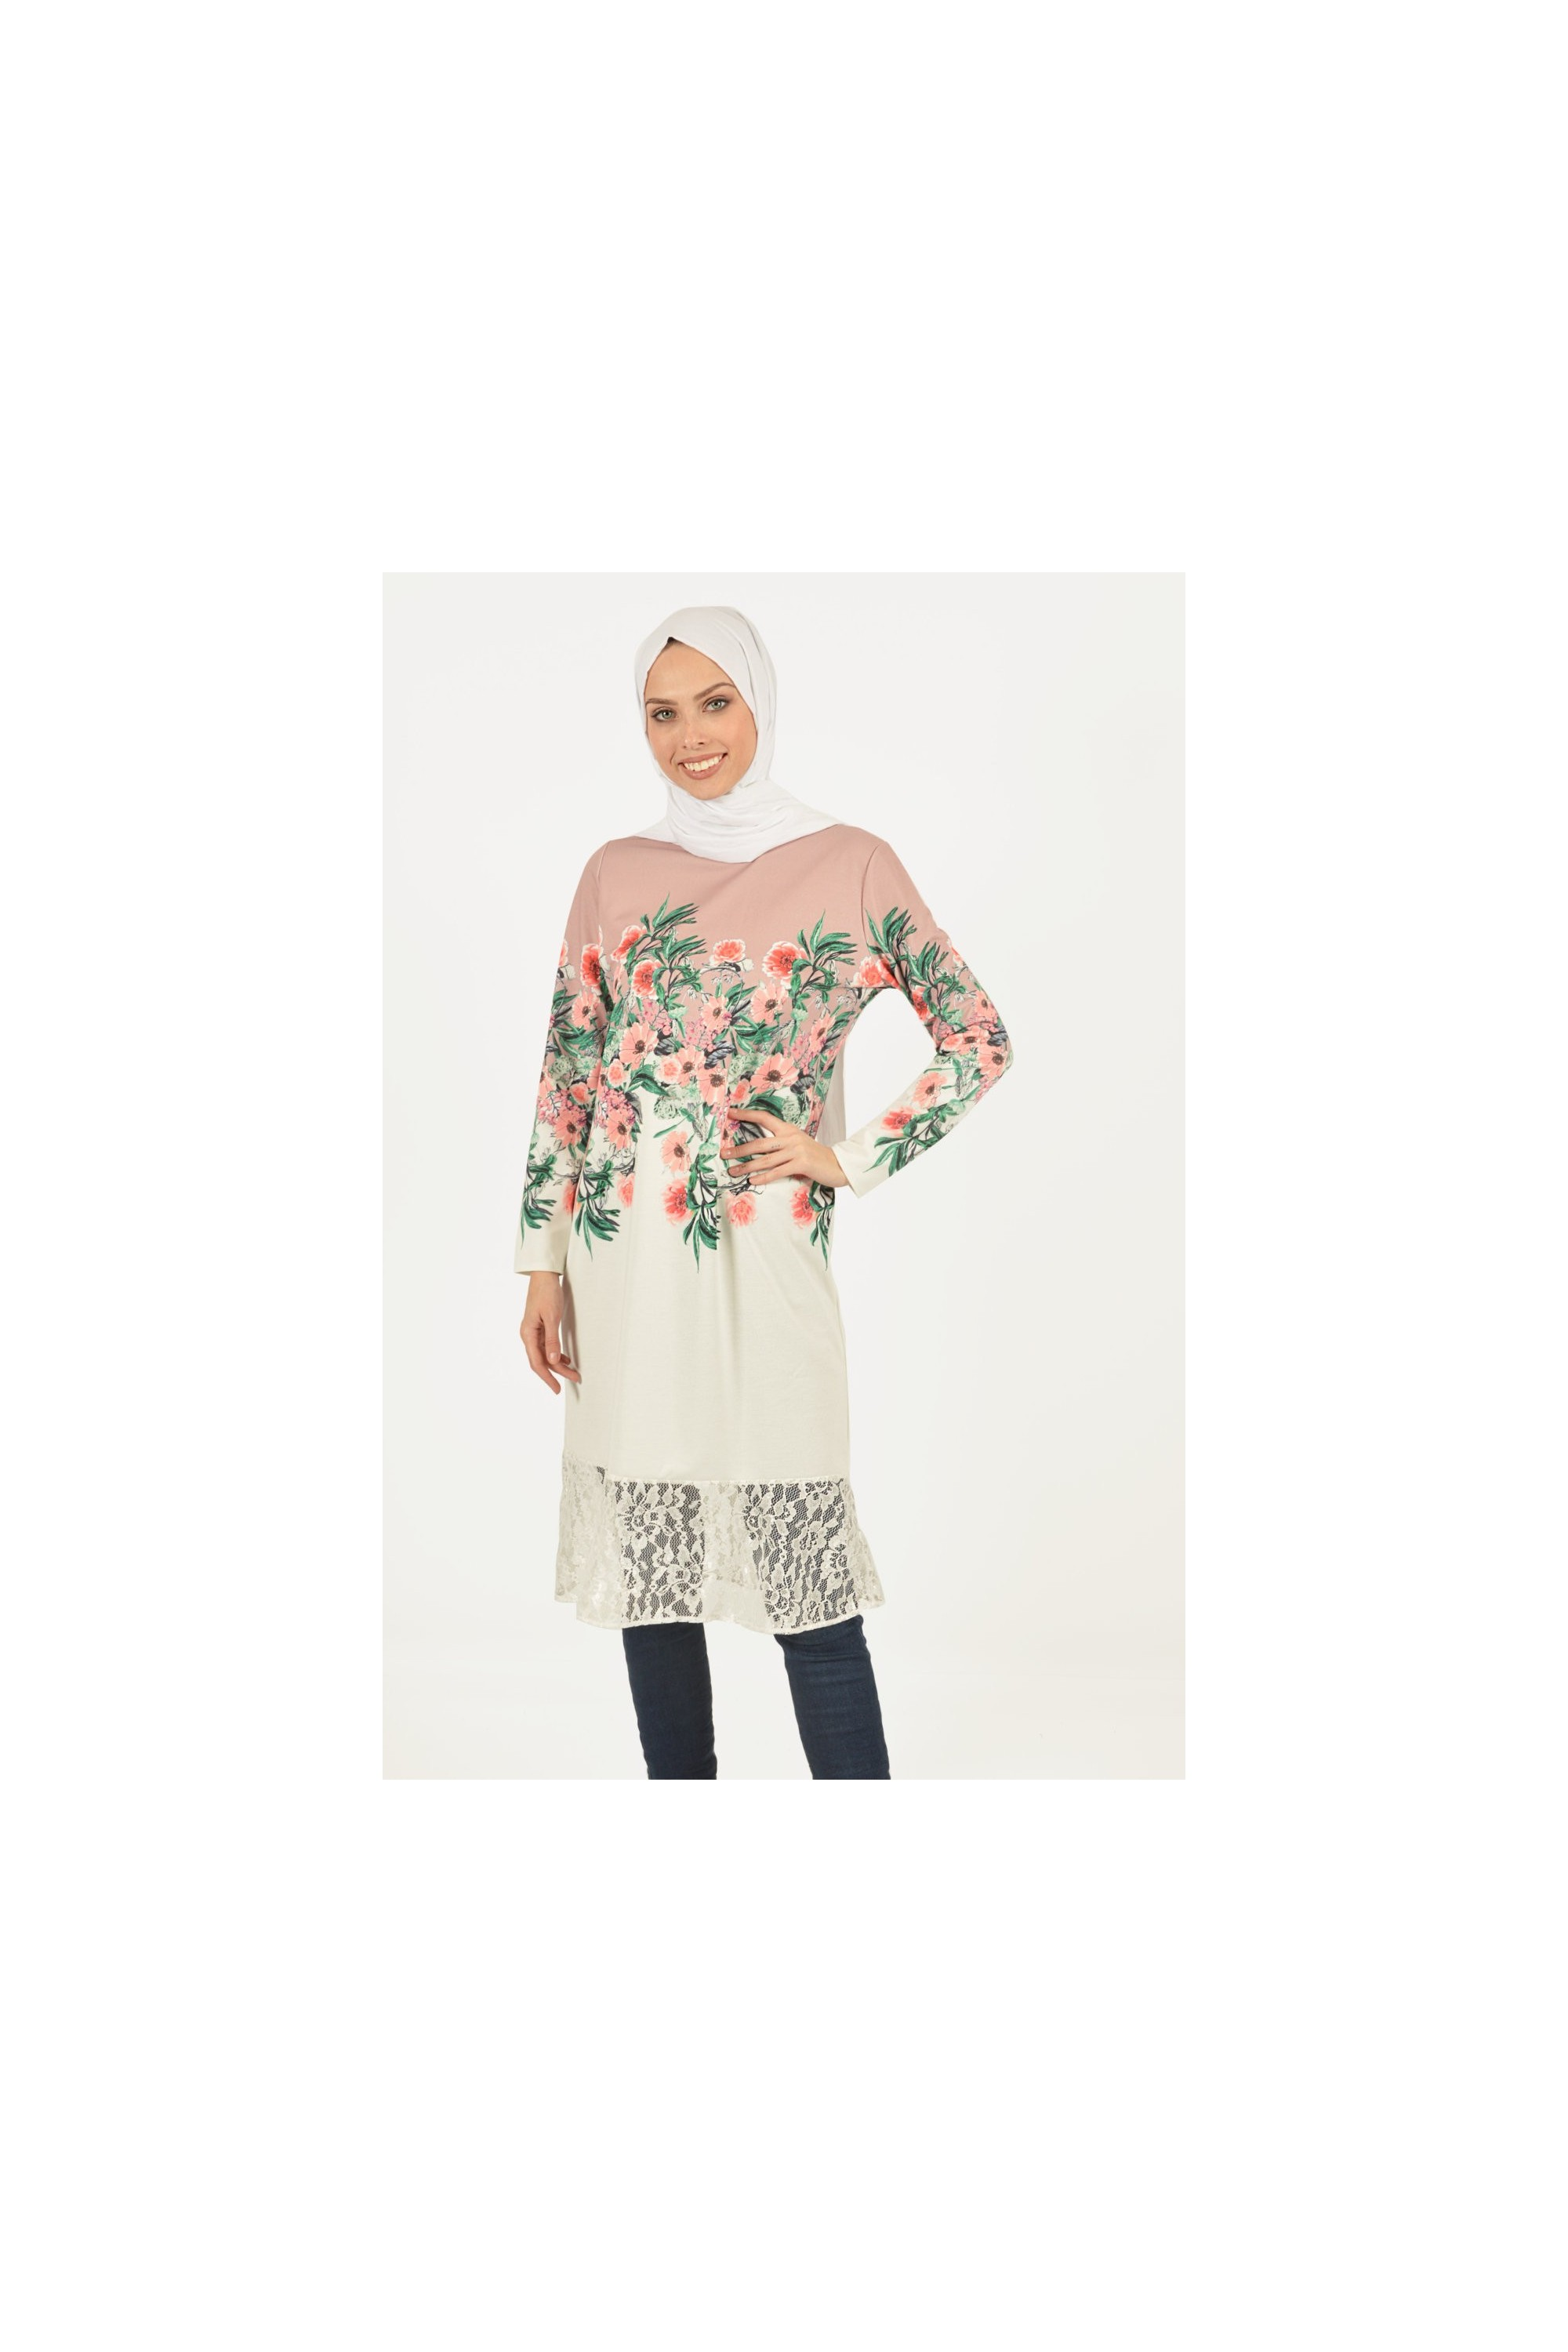 Lacy Floral Patterned Tunic